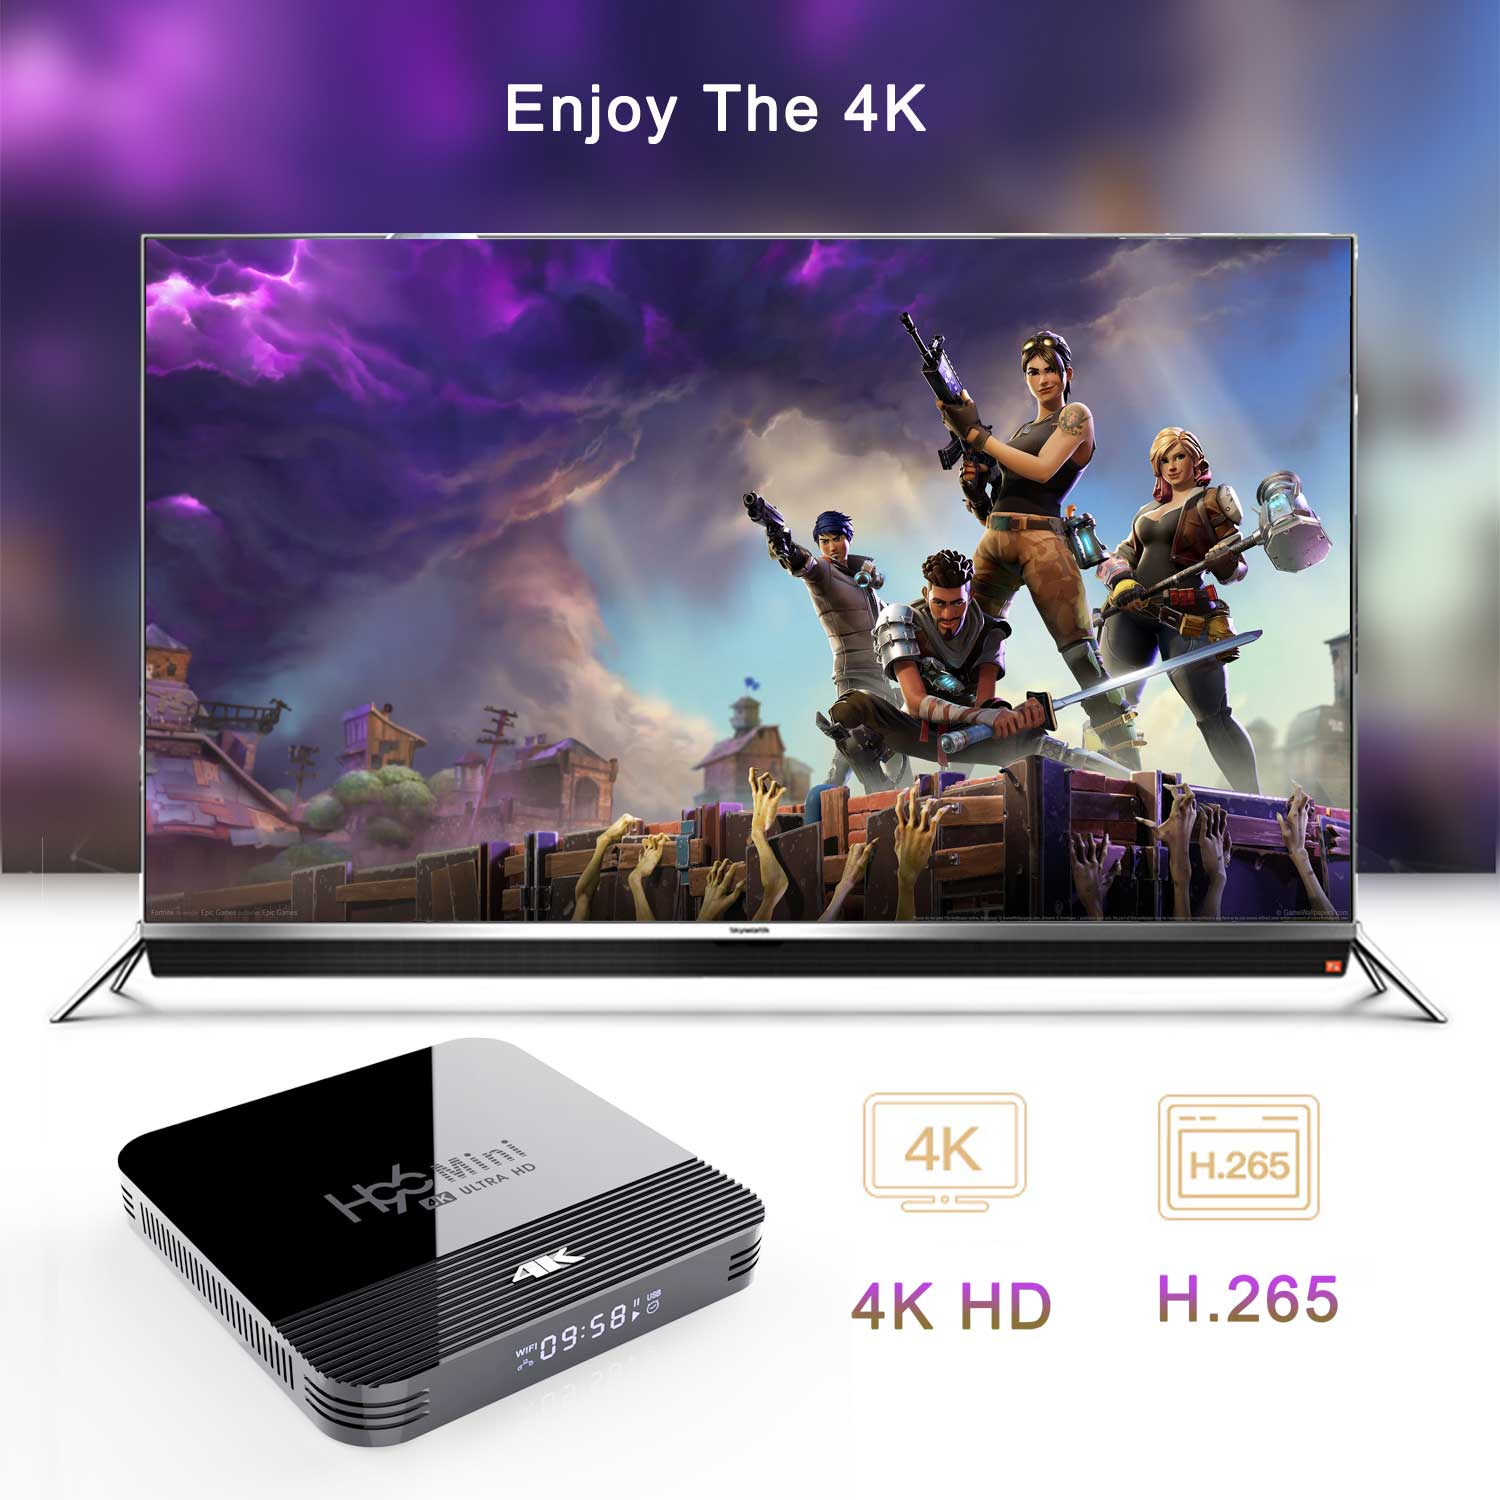 2019 Newest H96 Mini H8 RK3228A 4K TV Box 2GB+16GB Android 9.0 Set Top Box with BT4.0 2.4G/5G WiFi 4